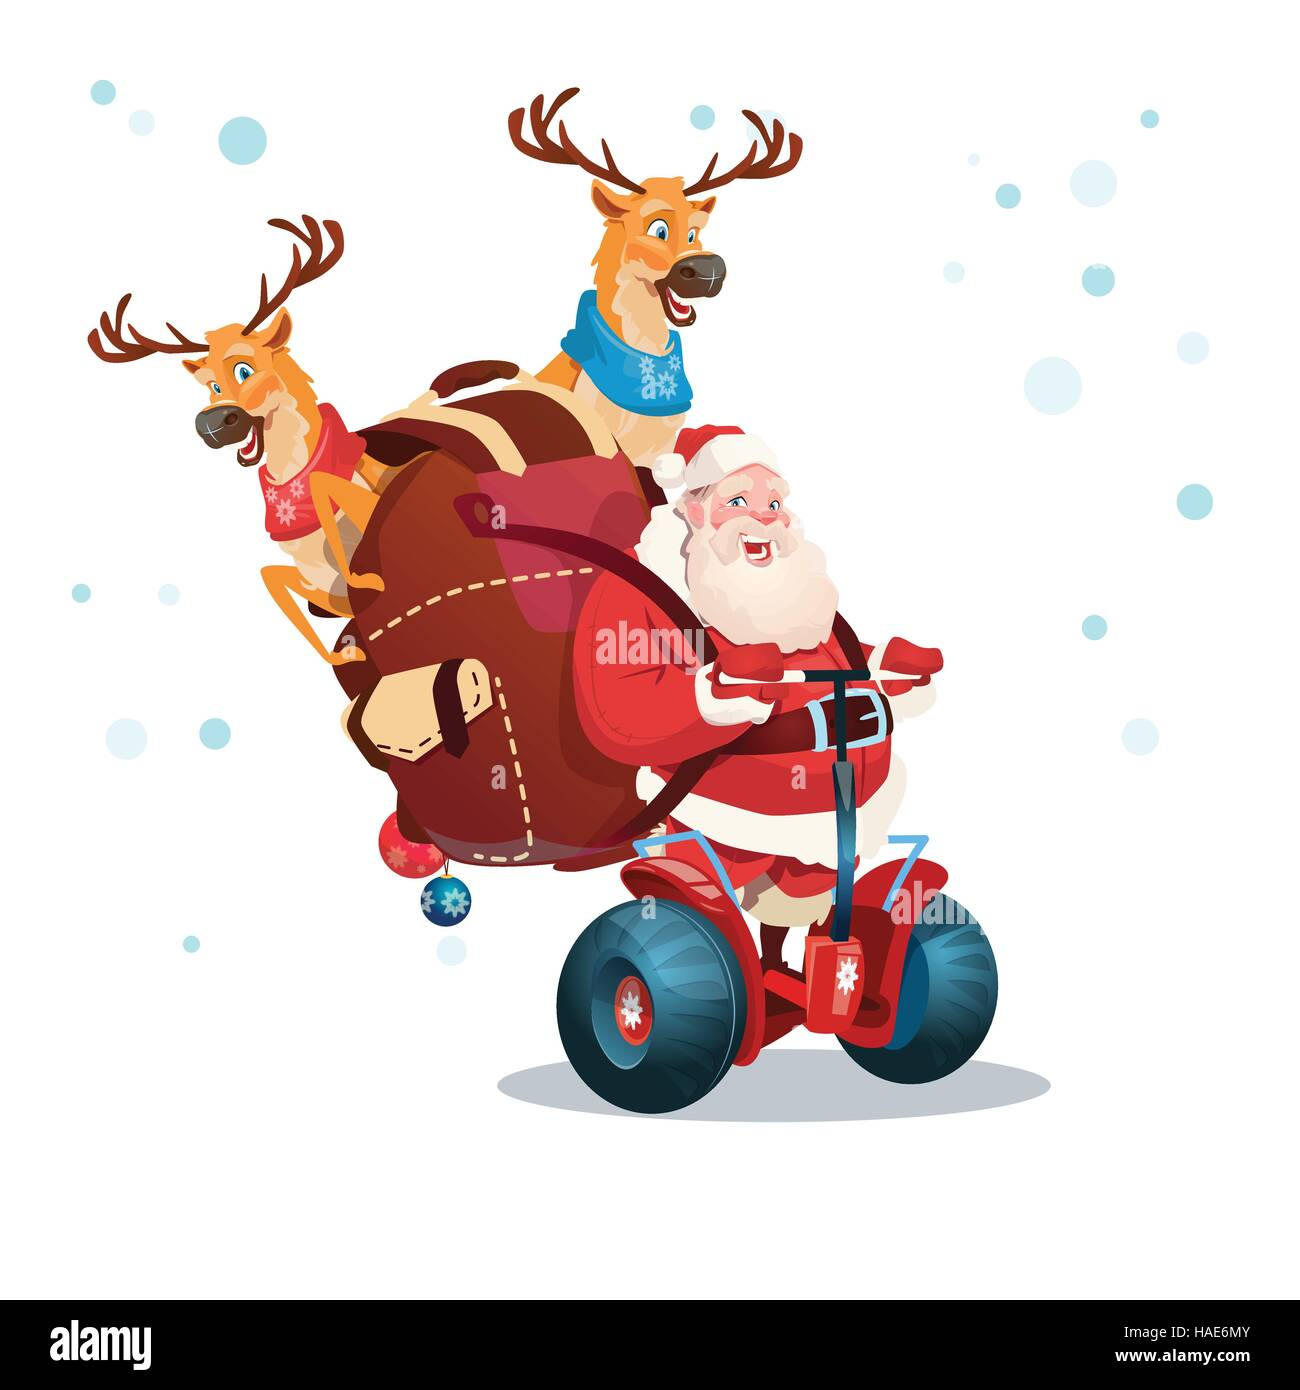 Santa Claus Deer Ride Electric Scooter Christmas Holiday Happy New Year Greeting Card - Stock Image